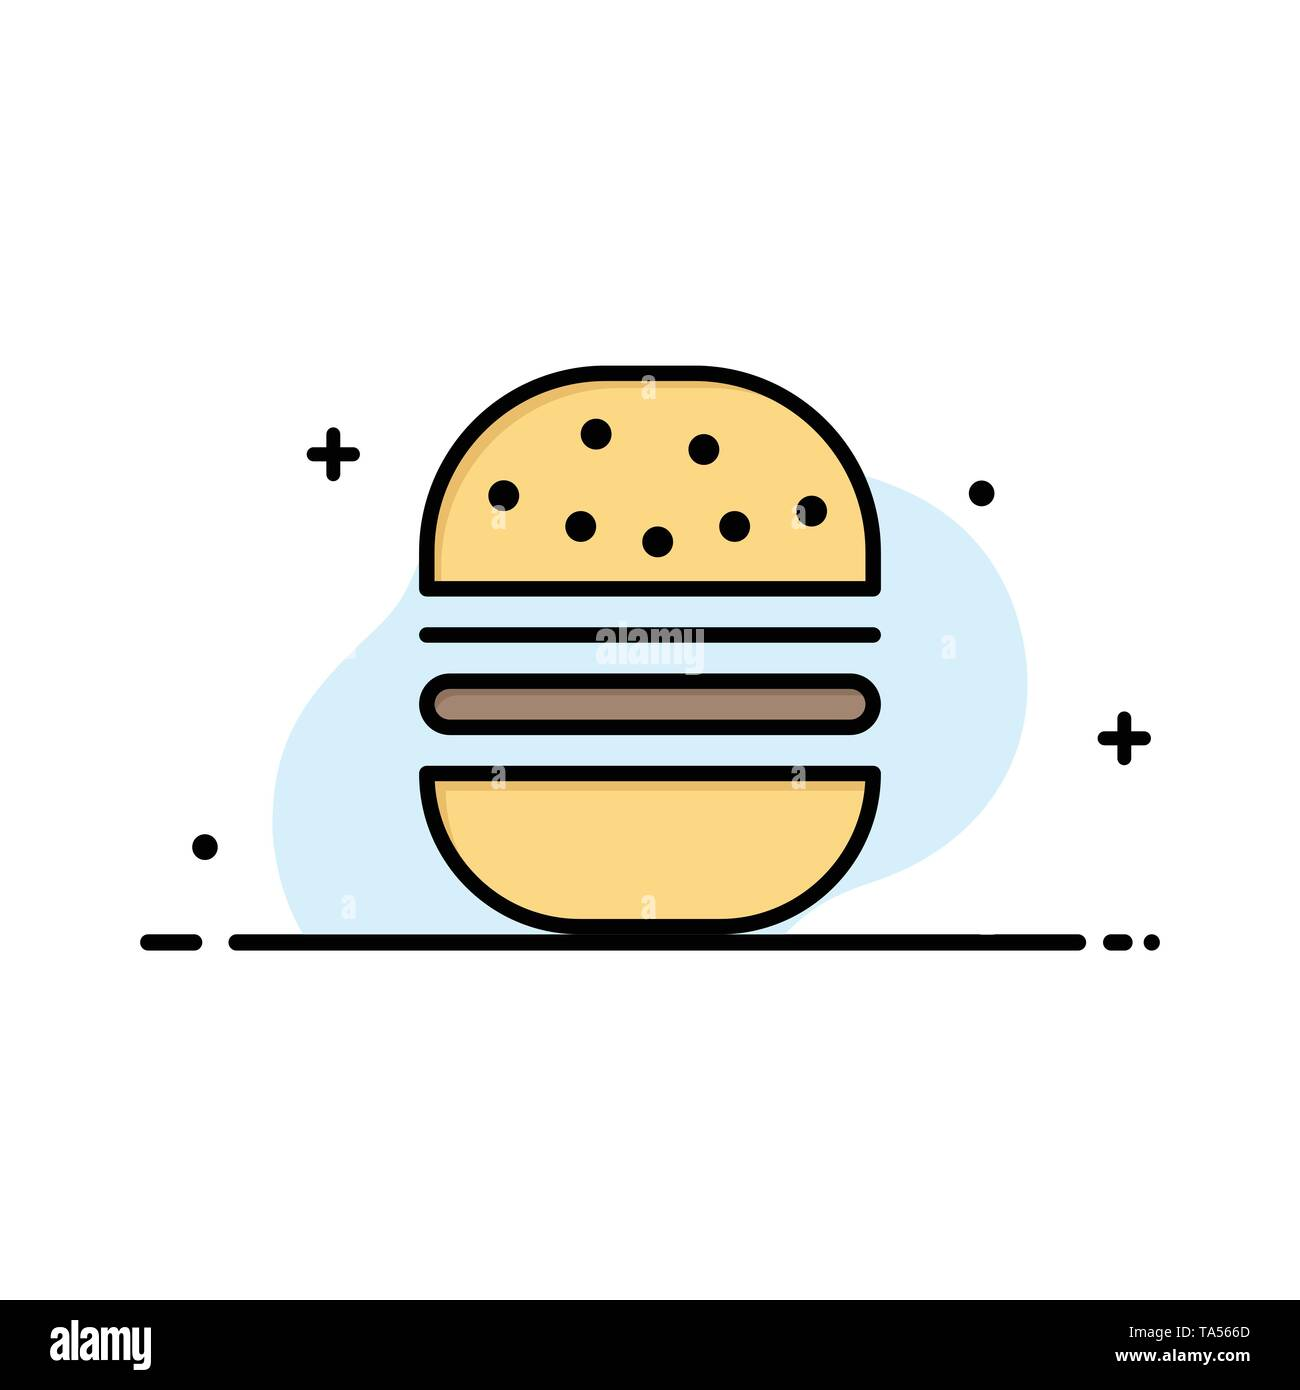 Burger, Fast food, Fast, Food Business Logo Template. Flat Color - Stock Image